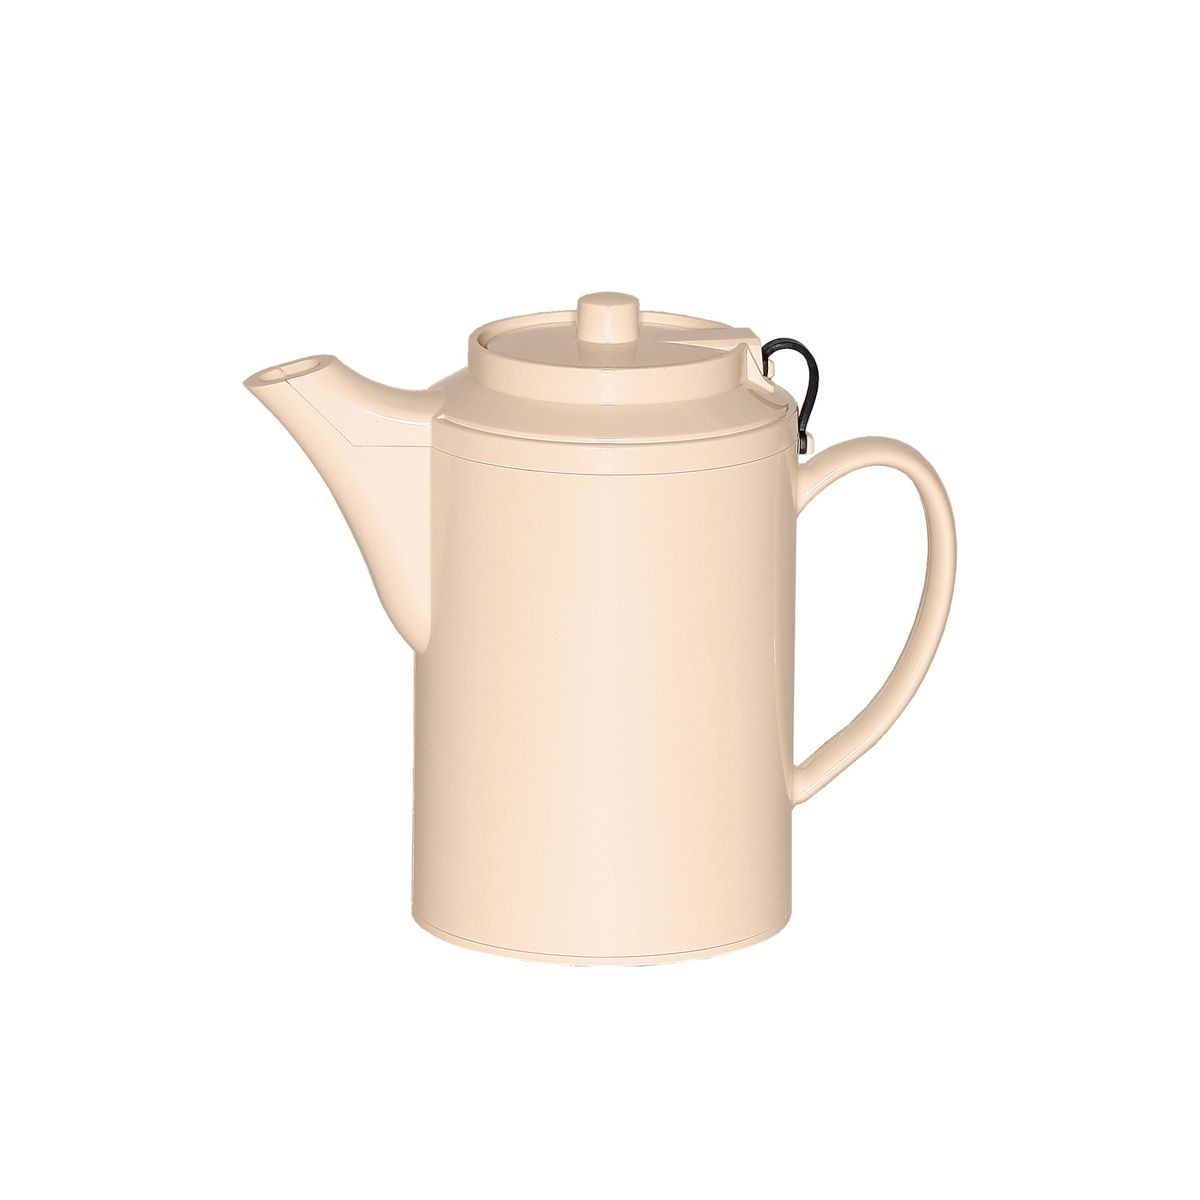 Service Ideas TST612AL Dripless Teapot with Tether, Almond 16 oz.